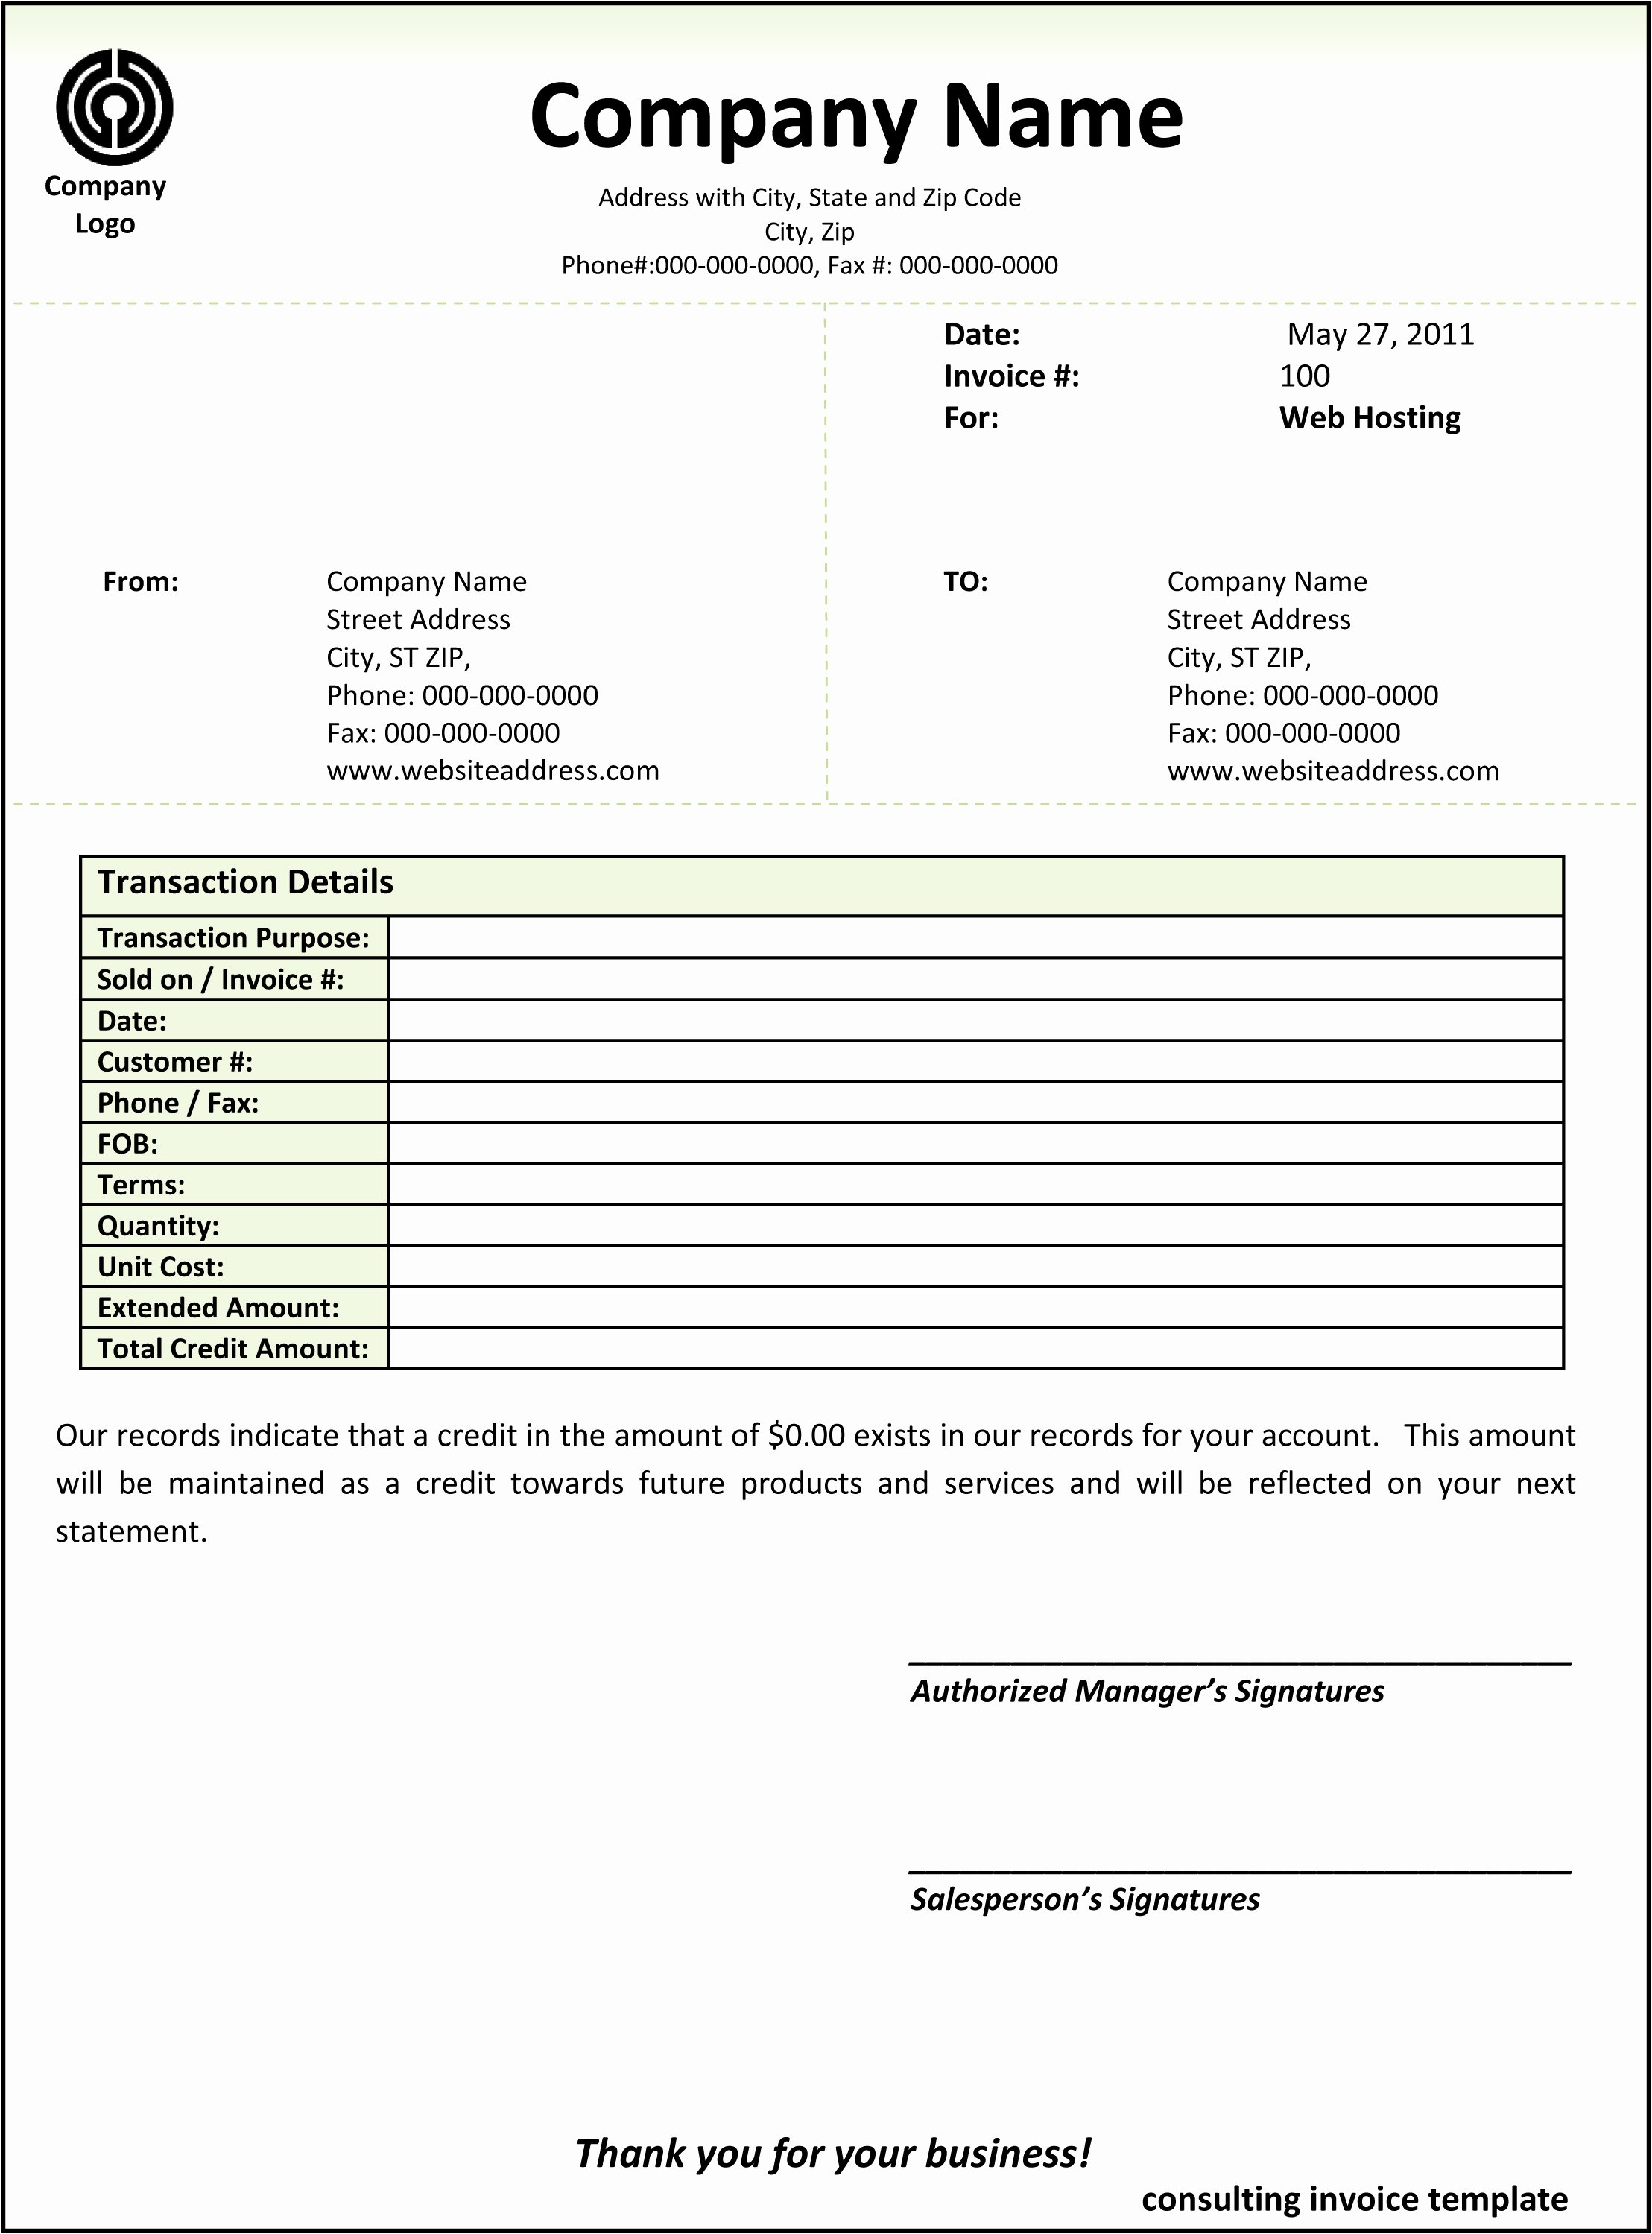 Invoice Template for Consulting Services Lovely Consulting Invoice Template Word